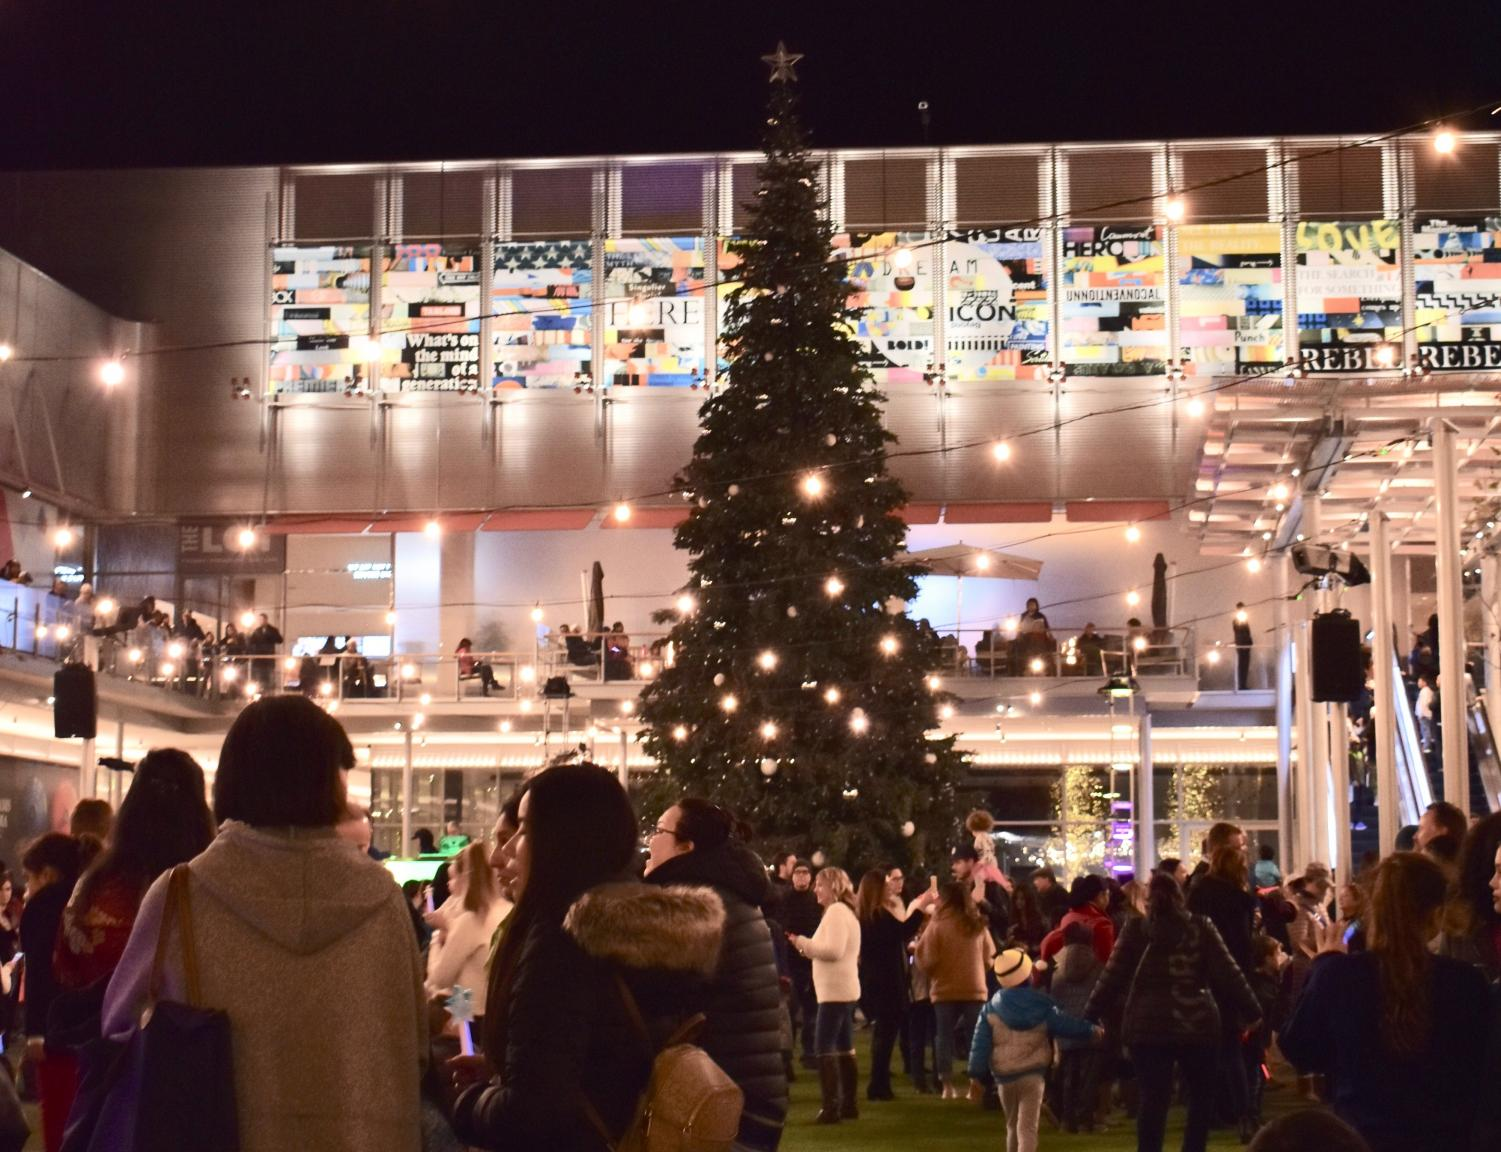 More than 1,000 San Ramon residents gathered on the two floors of City Center Bishop Ranch for the city's first annual